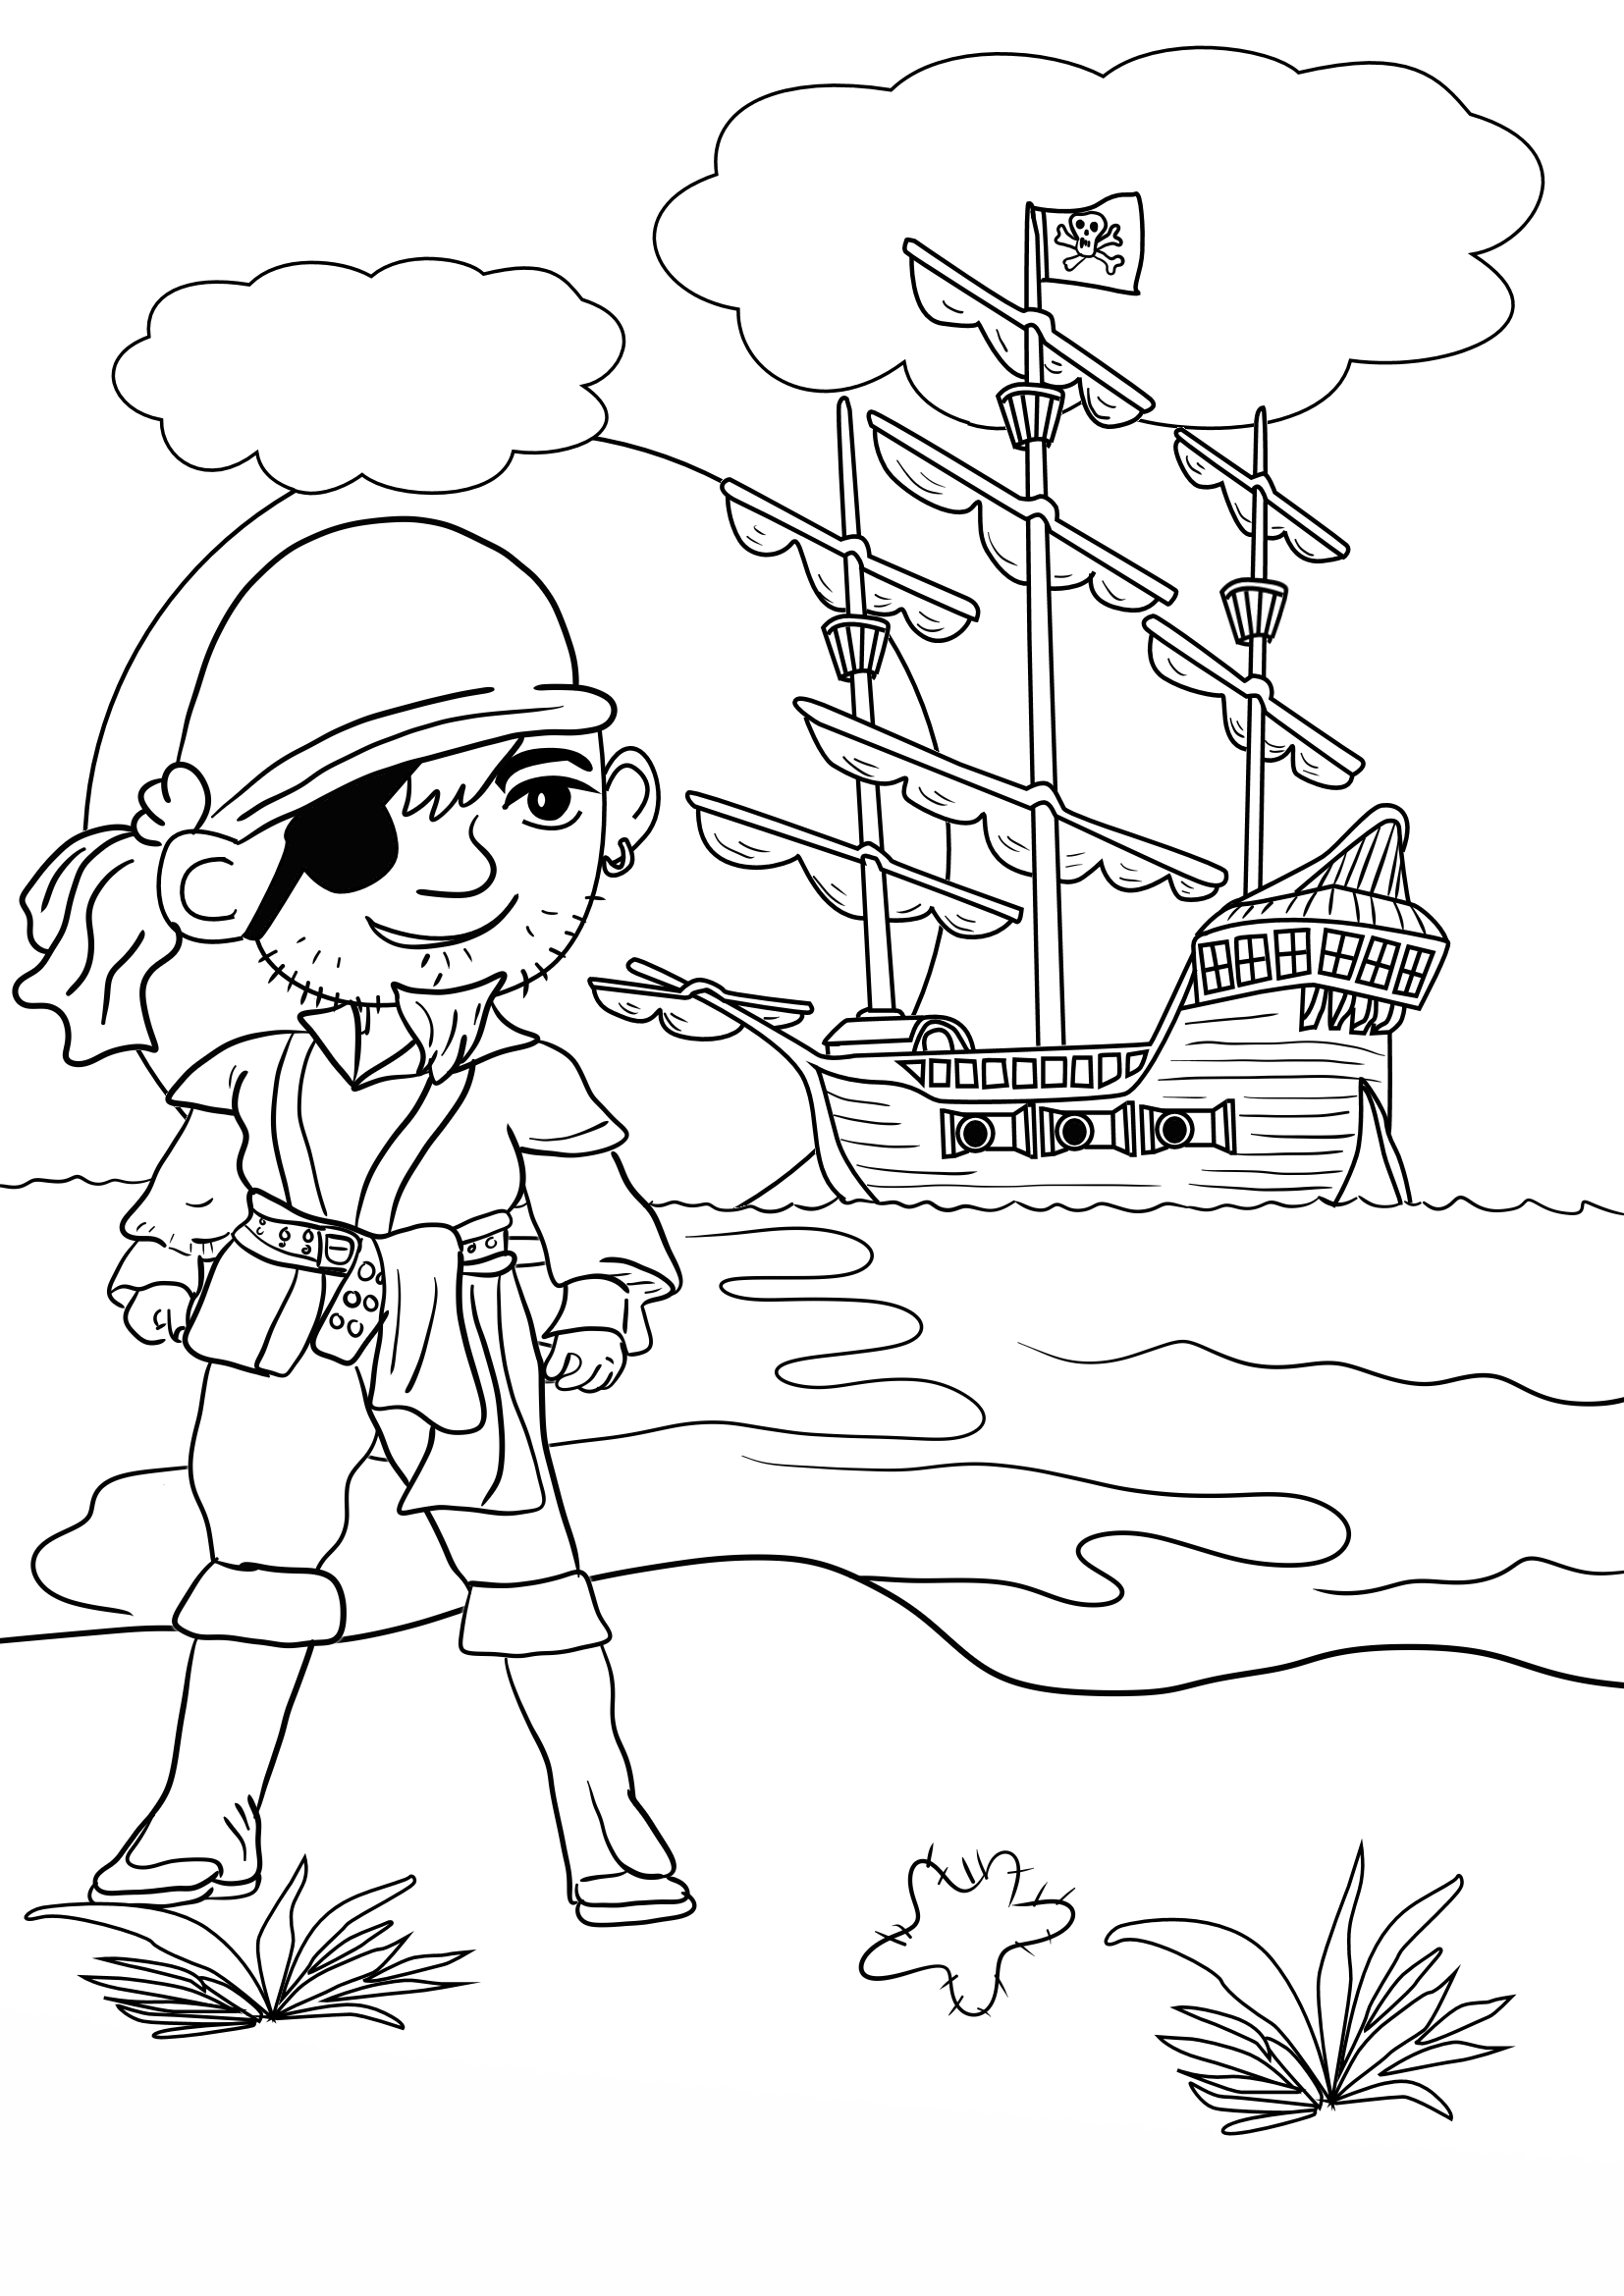 pirate coloring free printable pirate coloring pages for kids coloring pirate